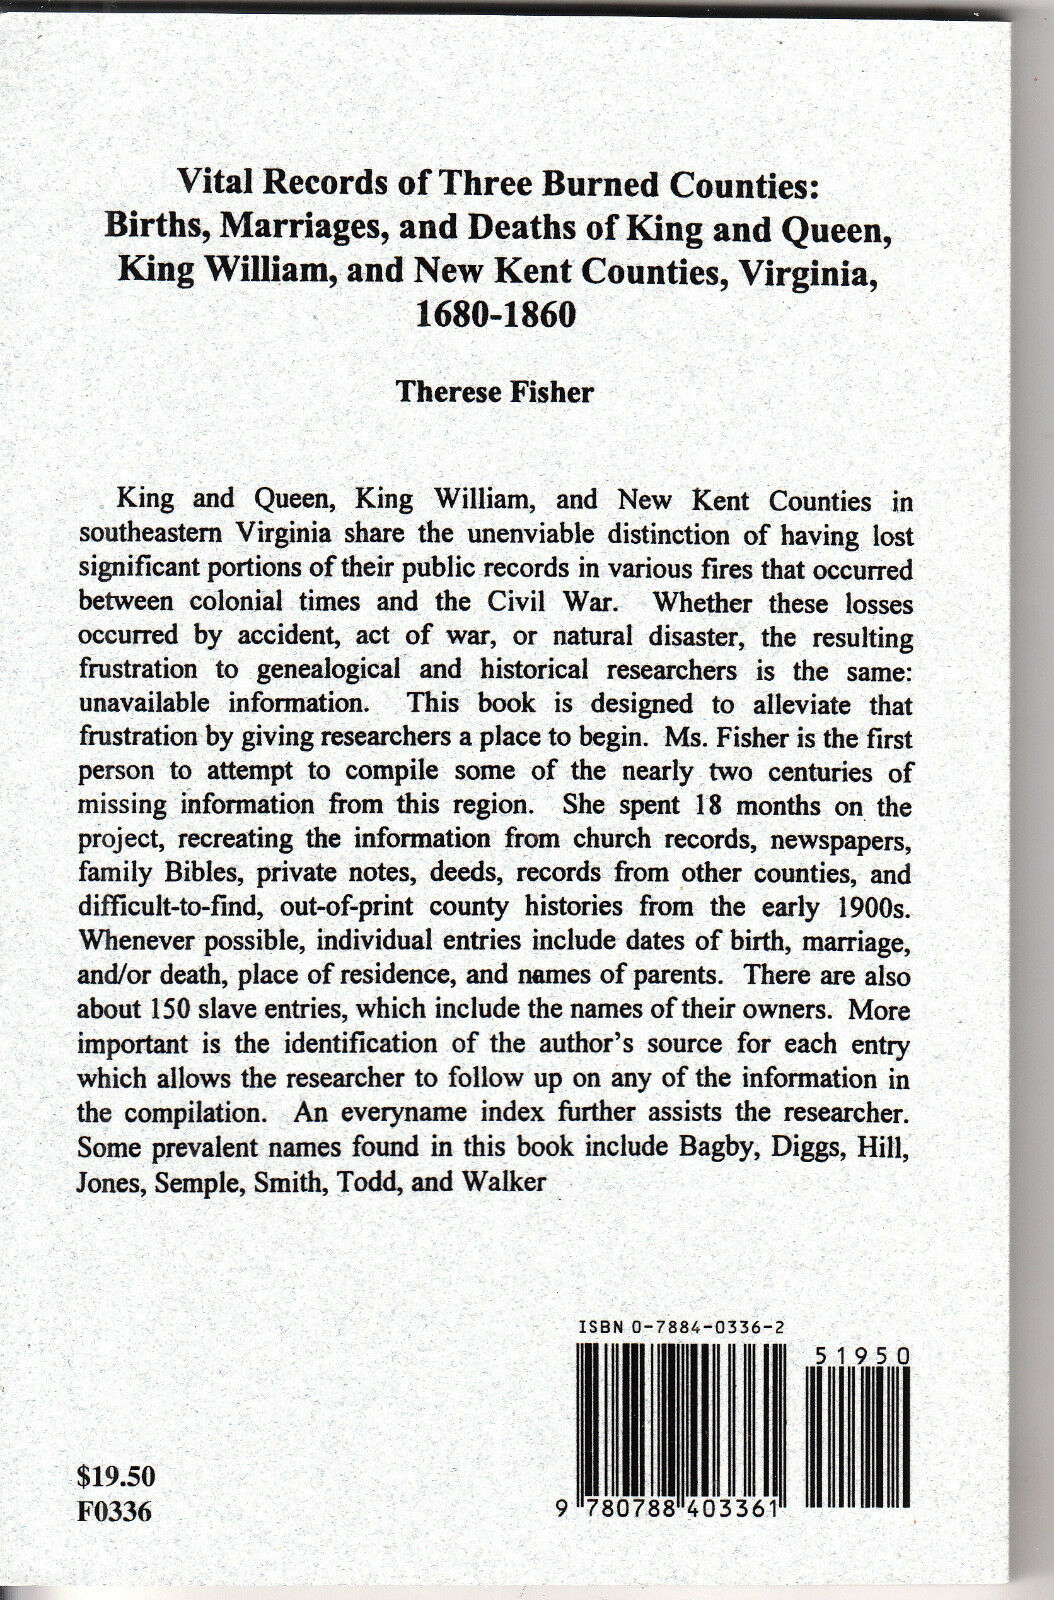 Vital Records of Three Burned Counties : Births, Marriages and Deaths of  King and Queen, King William and New Kent Counties, Virginia, 1680-1860 by